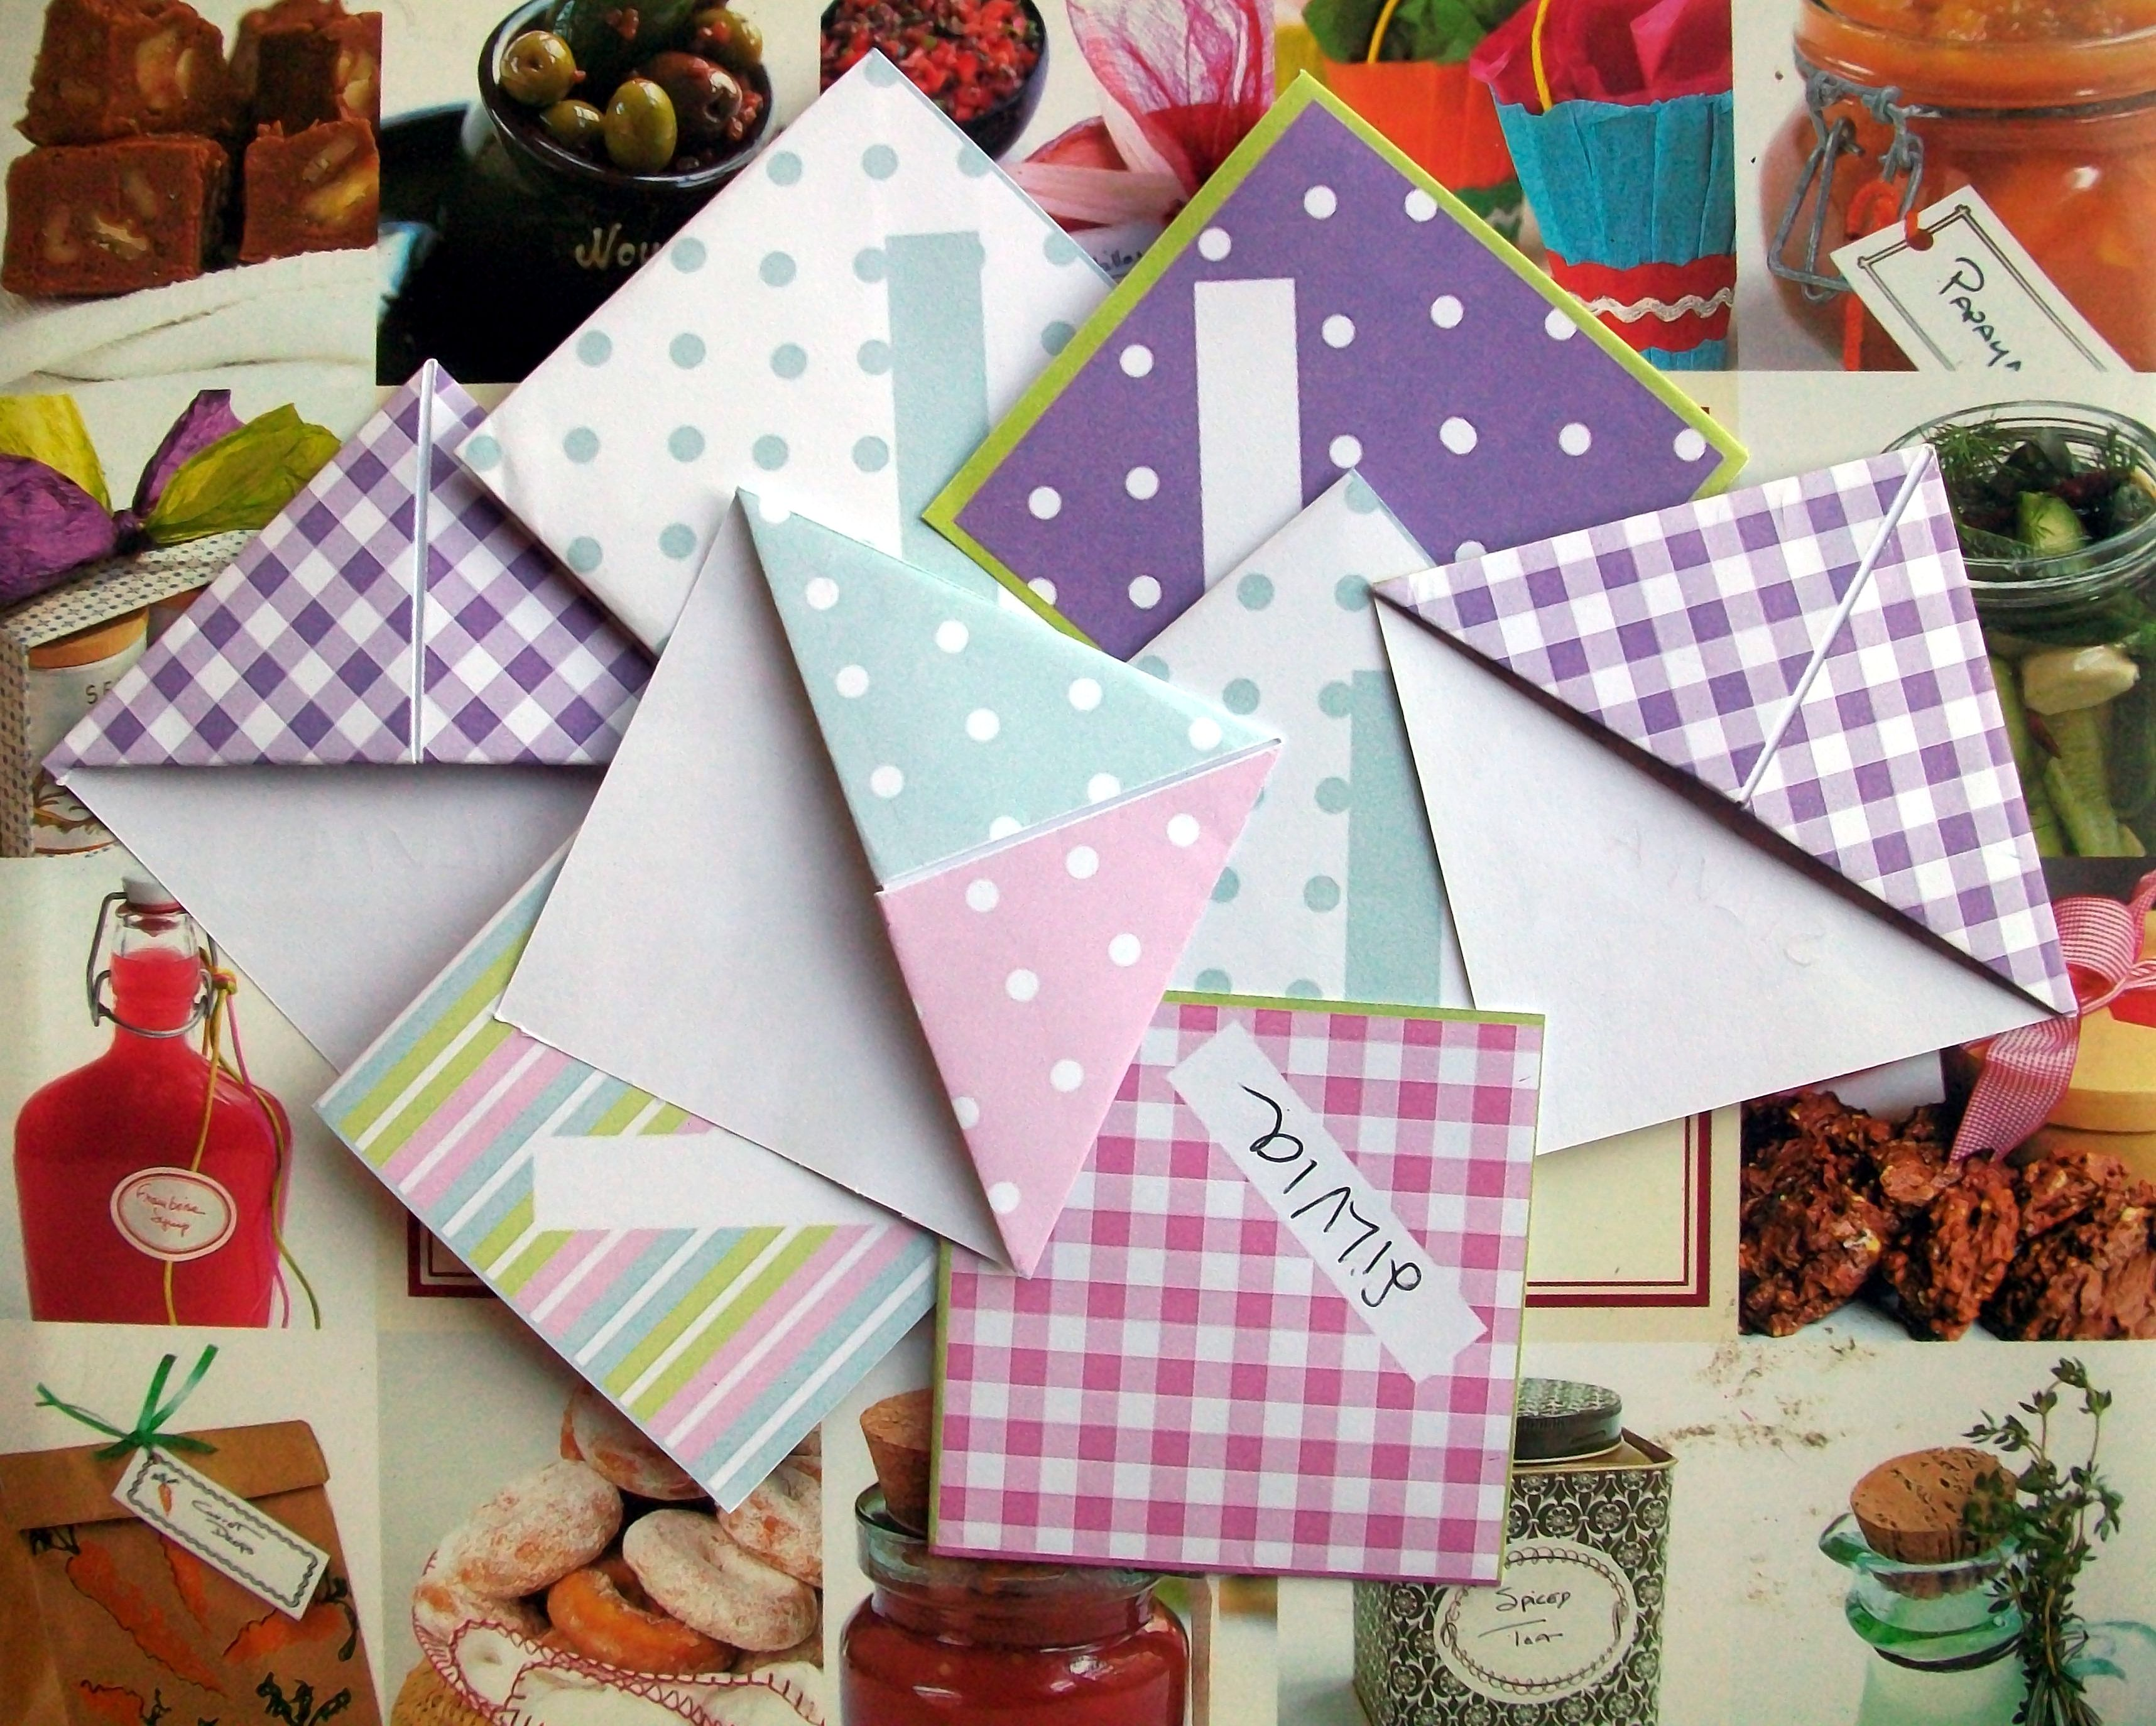 Scrapbook paper books - Freebie Free Origami Bookmarks I Made These With Scrapbook Paper Cut Into Squares They Are Super Cute And Super Easy